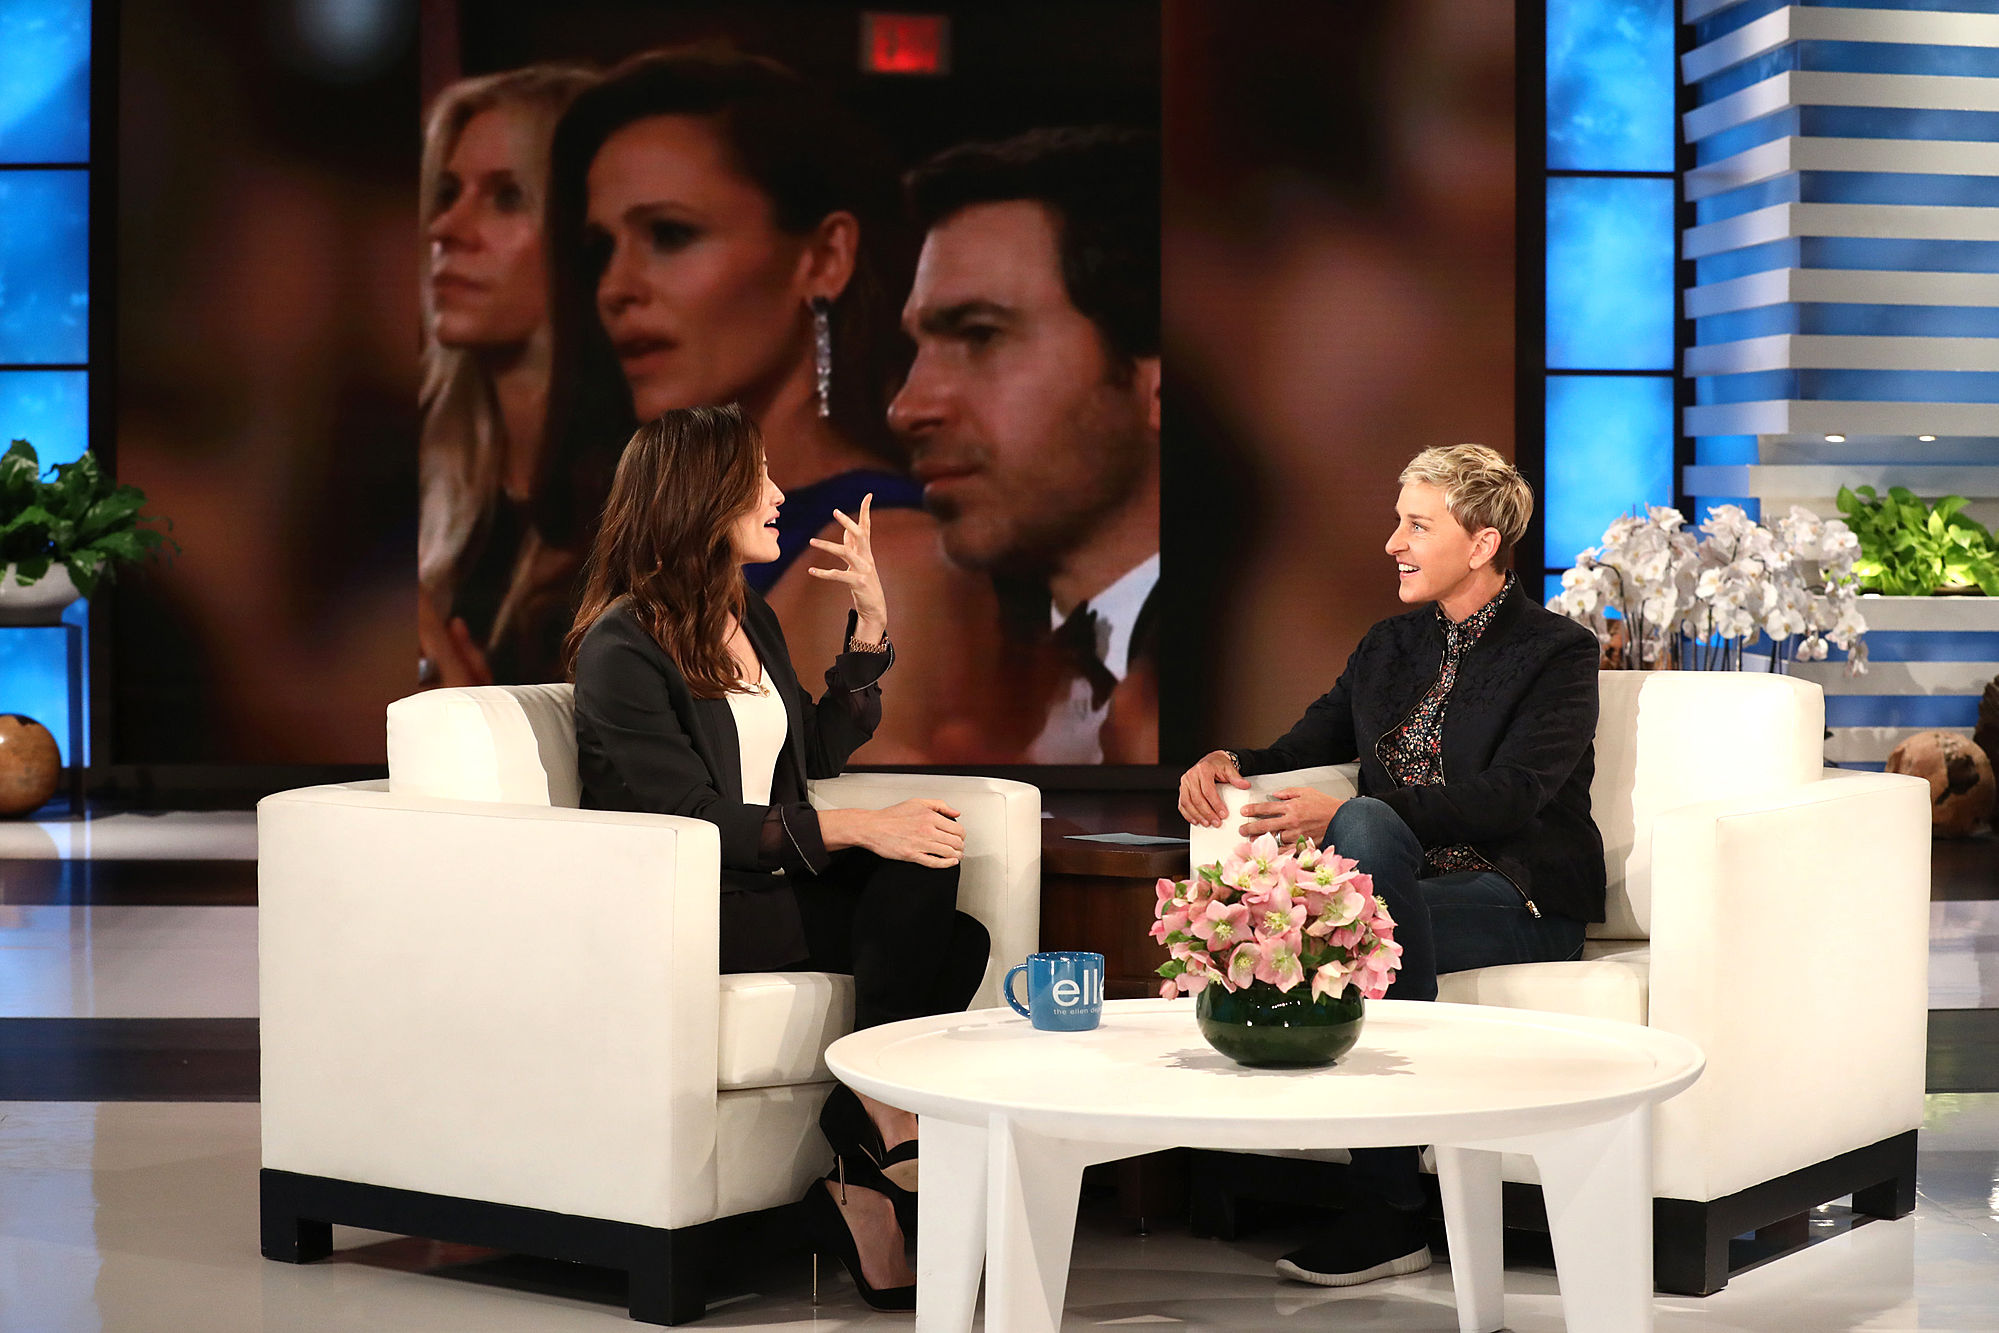 Jennifer Garner Says She Was Embarrassed by Her Viral Oscars Moment: 'What's Wrong with Me?'